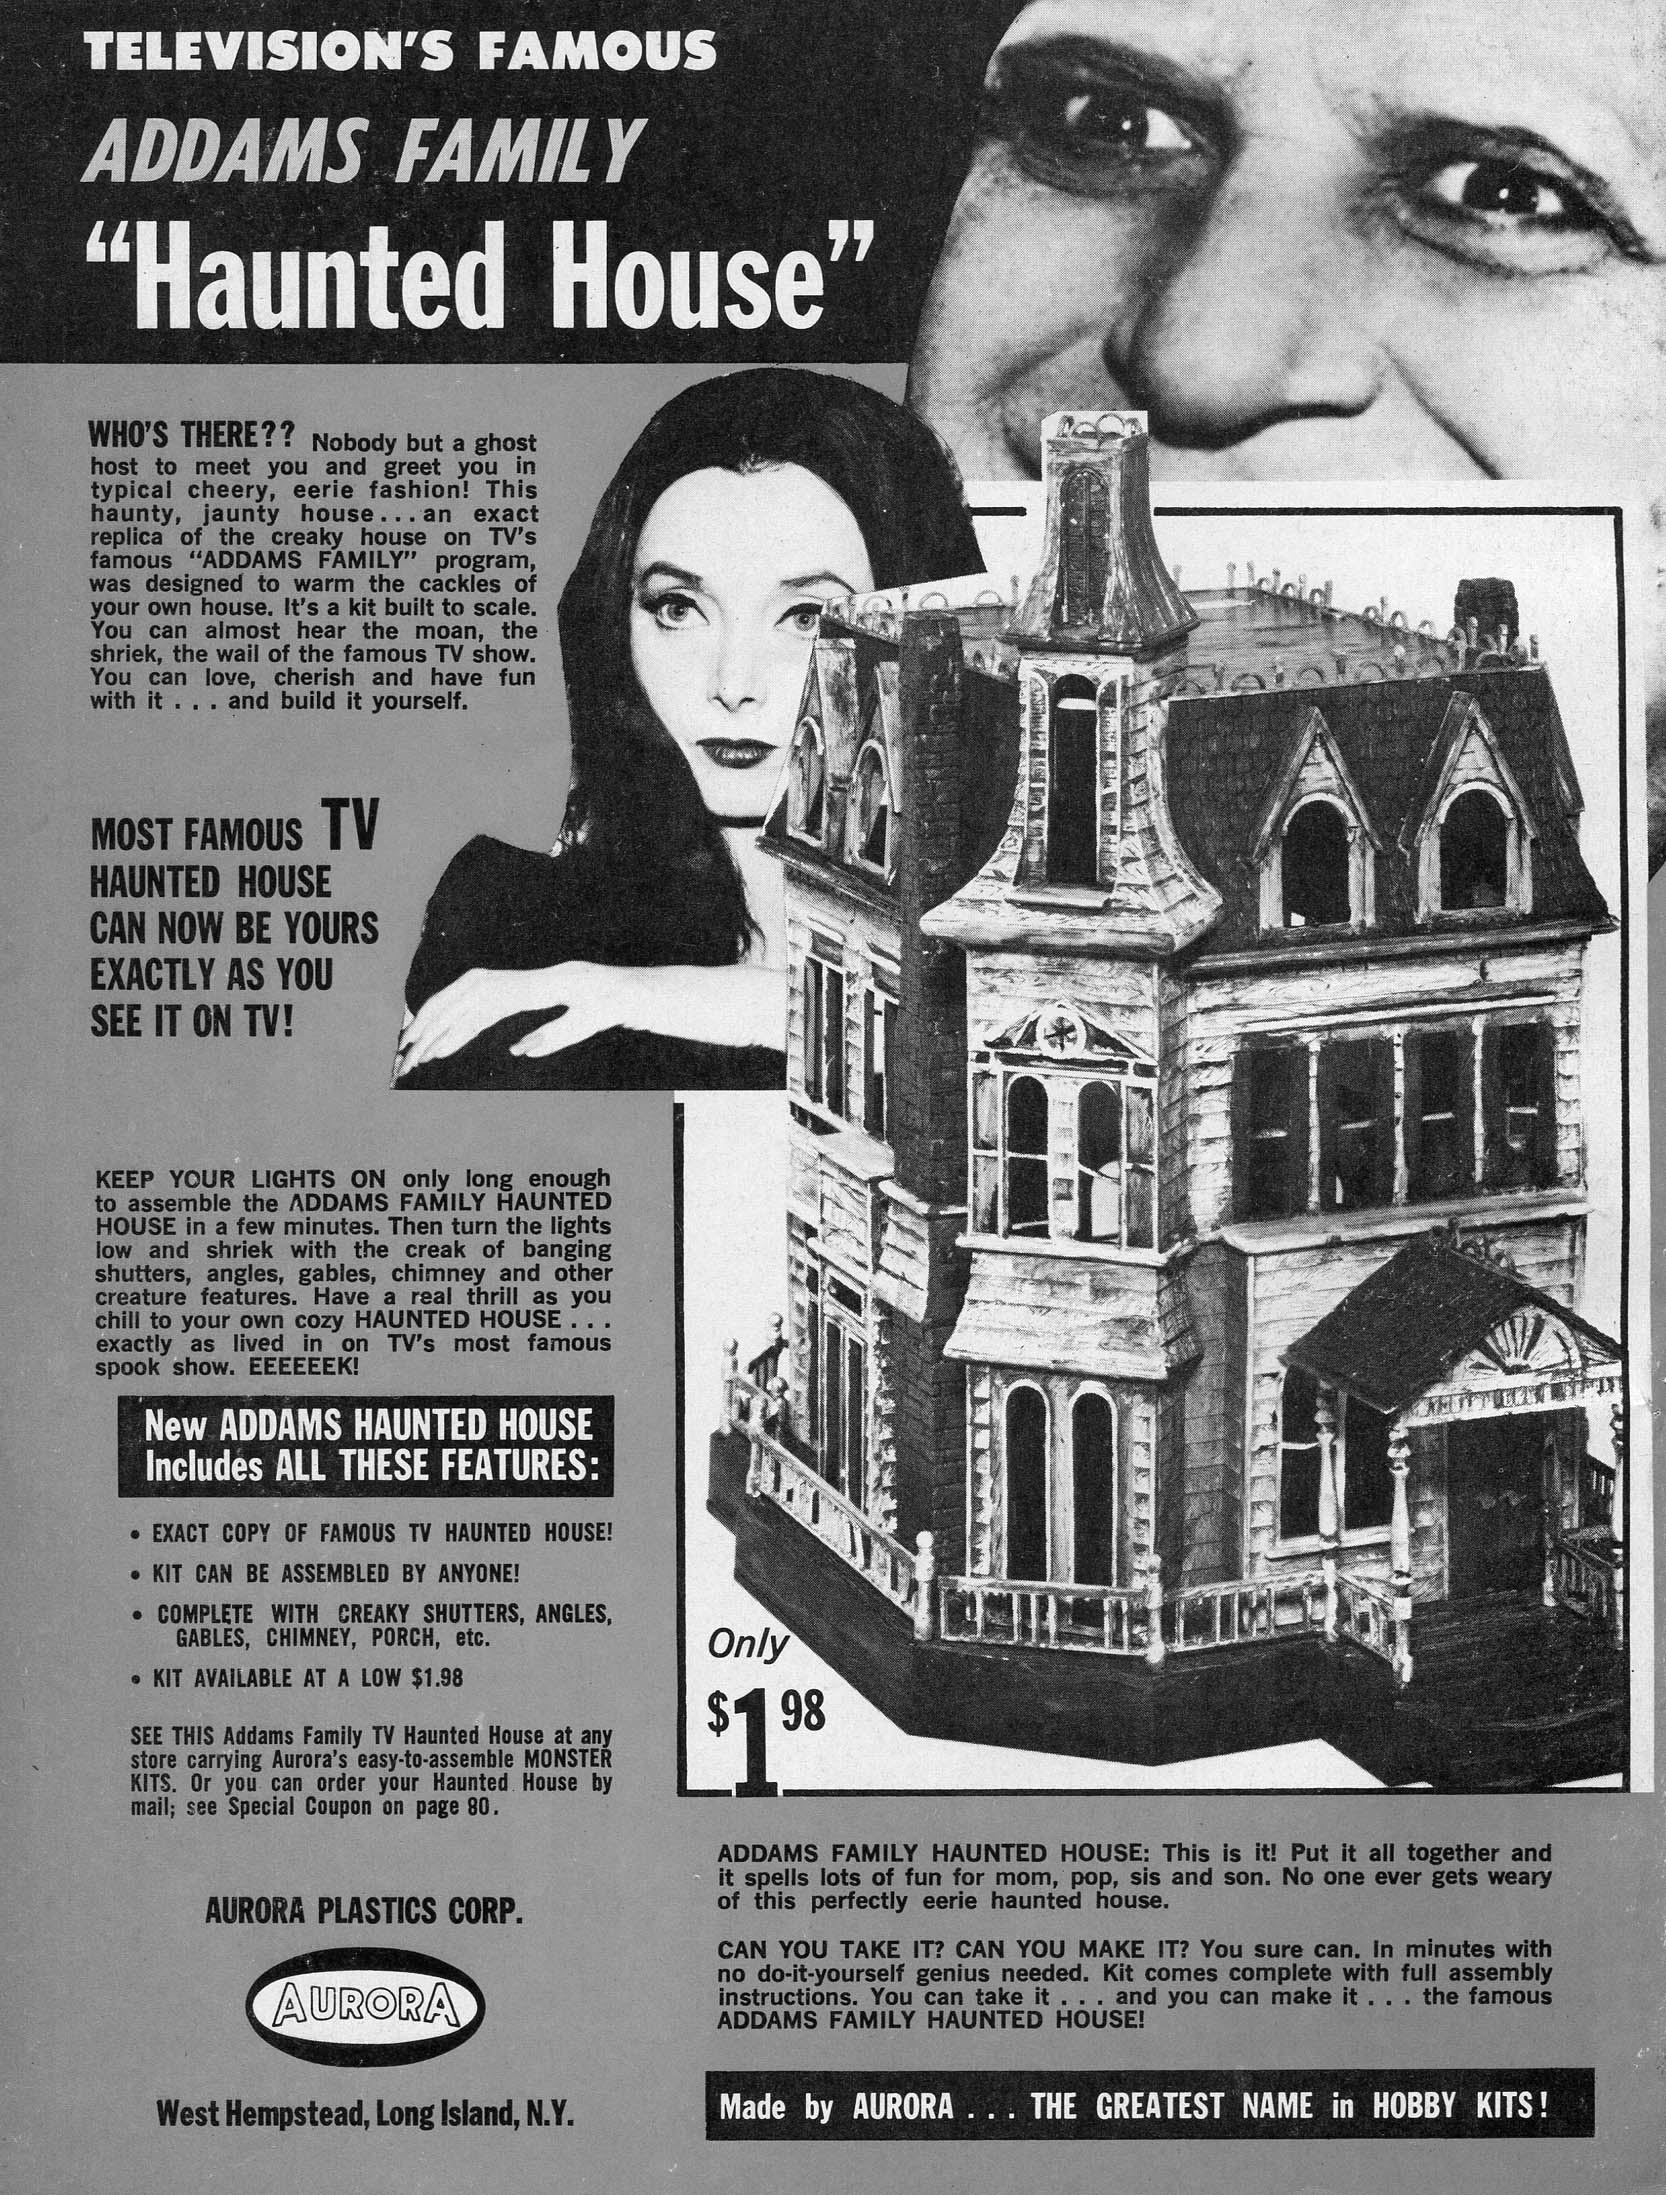 Addams family advert